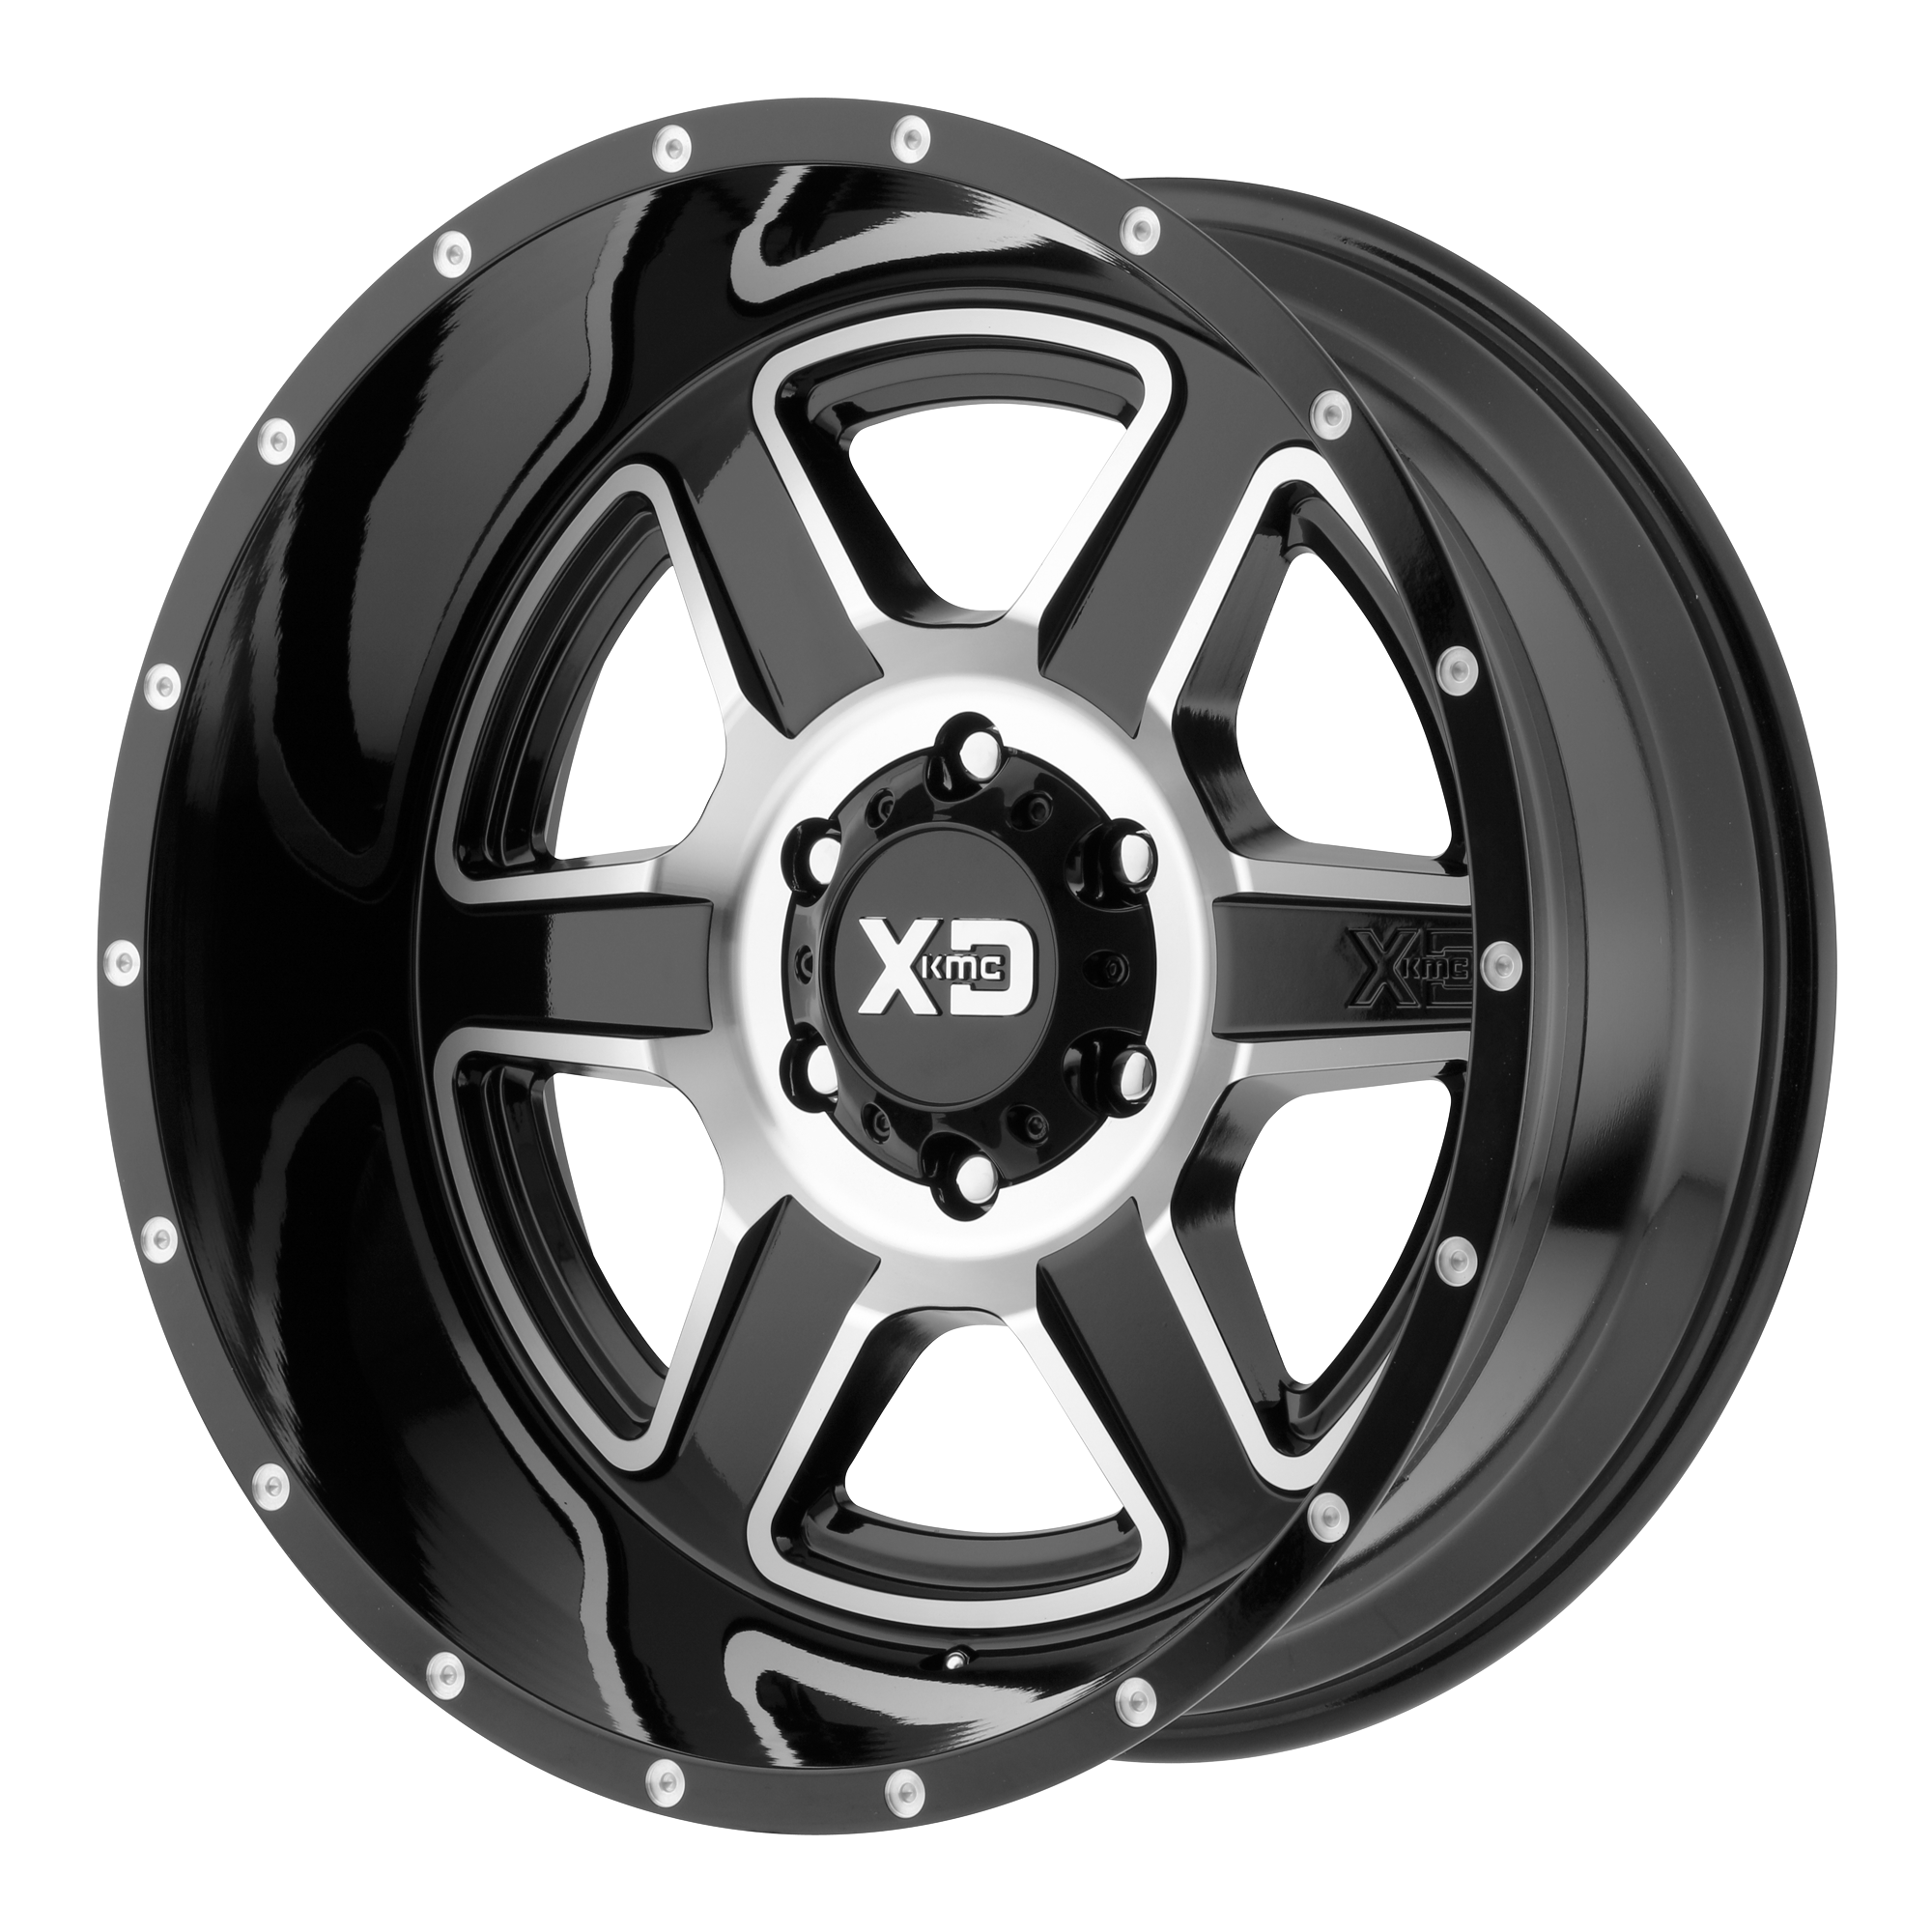 XD Series XD832 Wheels